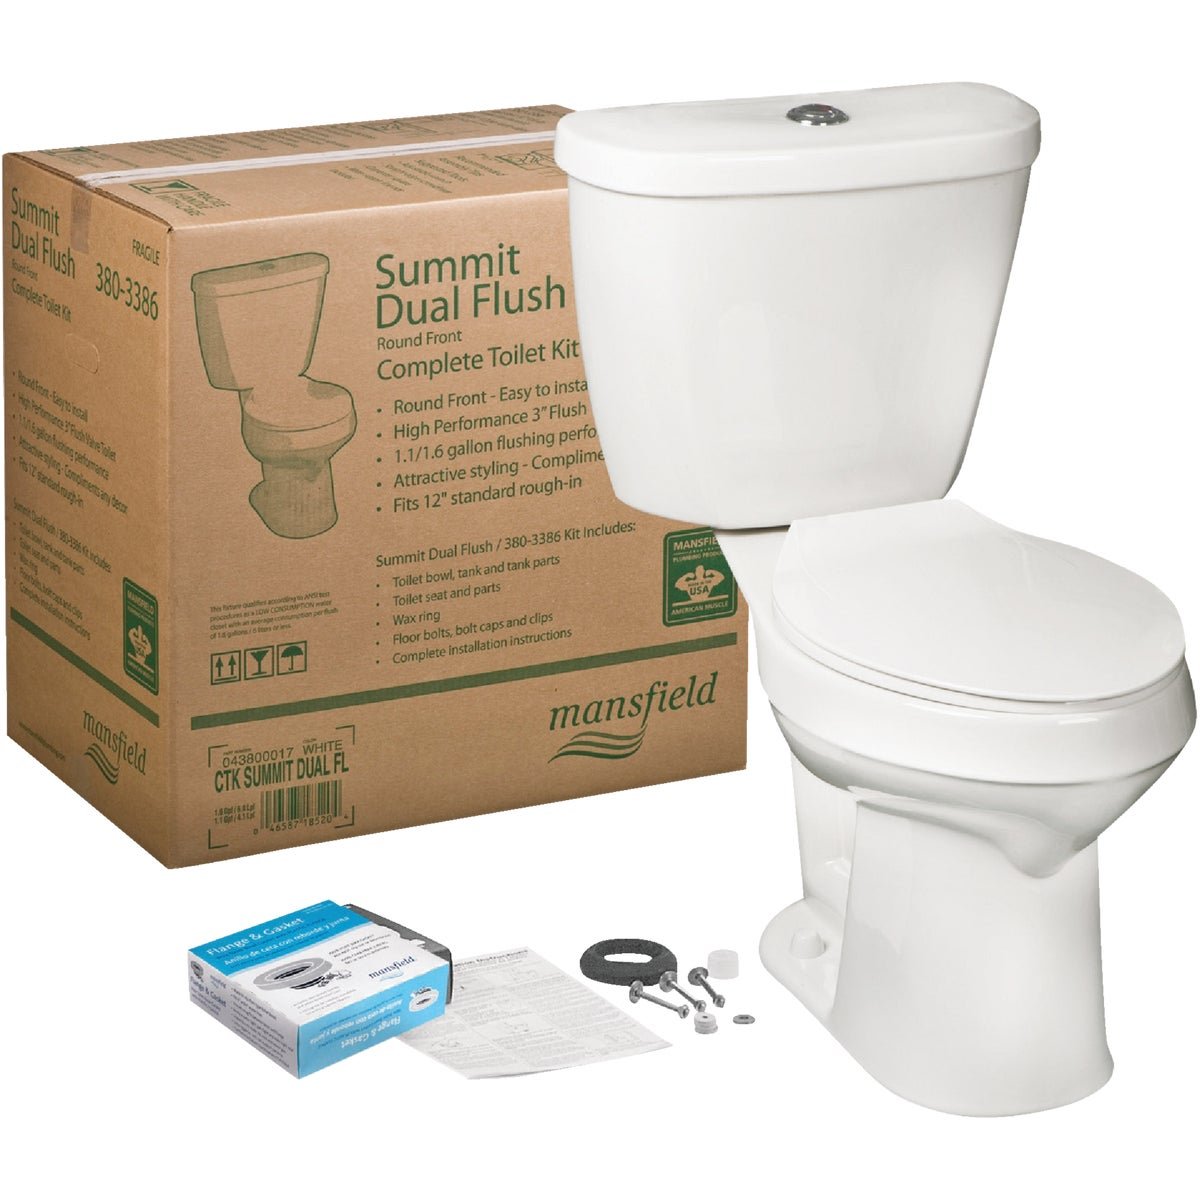 DUAL-FLUSH SUMMIT TOILET - 043800017 by Mansfield Plumbing